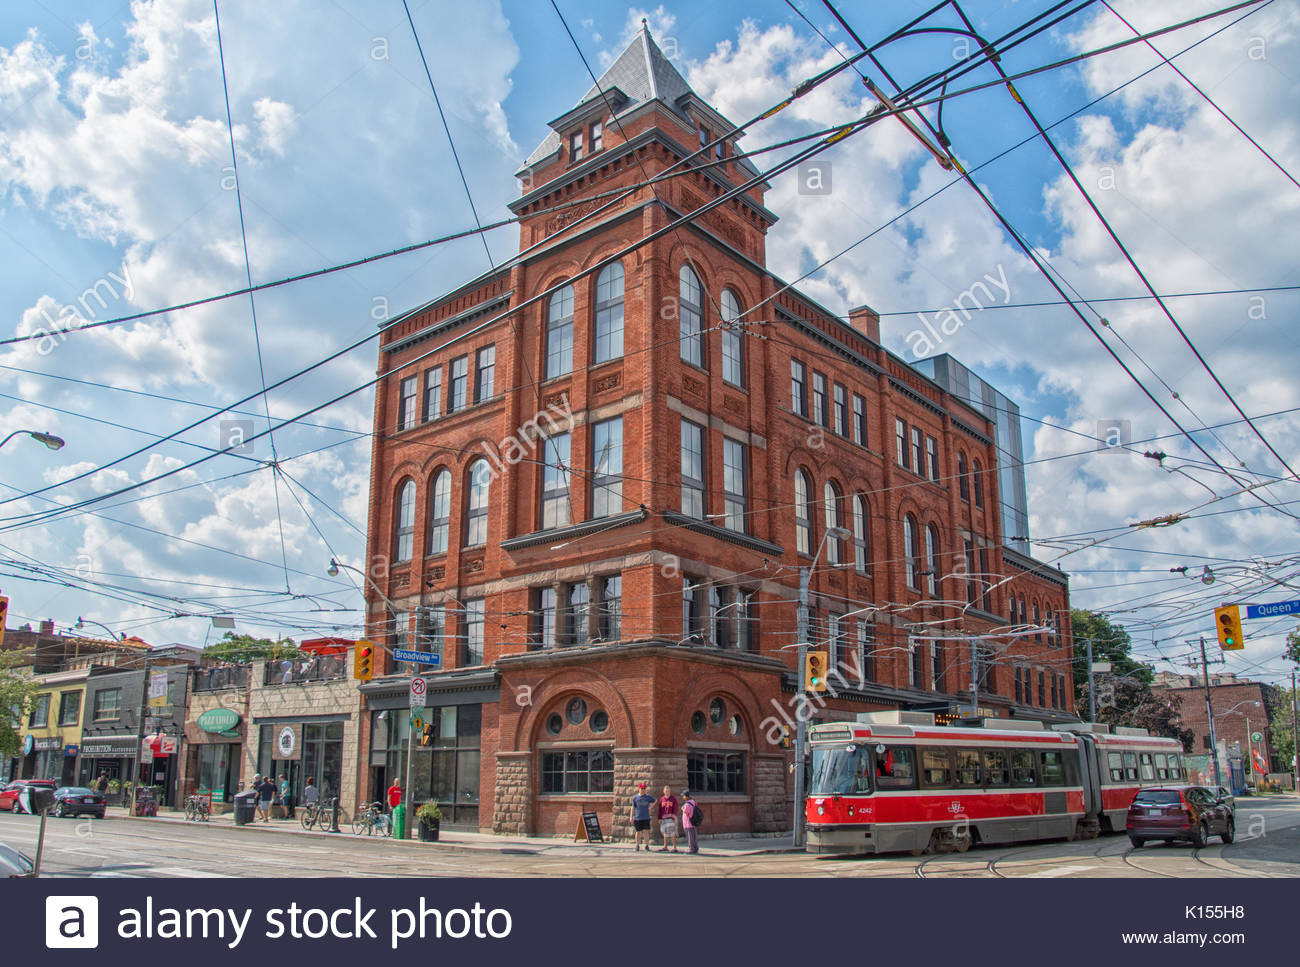 Dingman's Hall, currently Broadview Hotel is a heritage building with a Romanesque Revival Architecture, it is also a tourist attraction in the Canadi - Stock Image